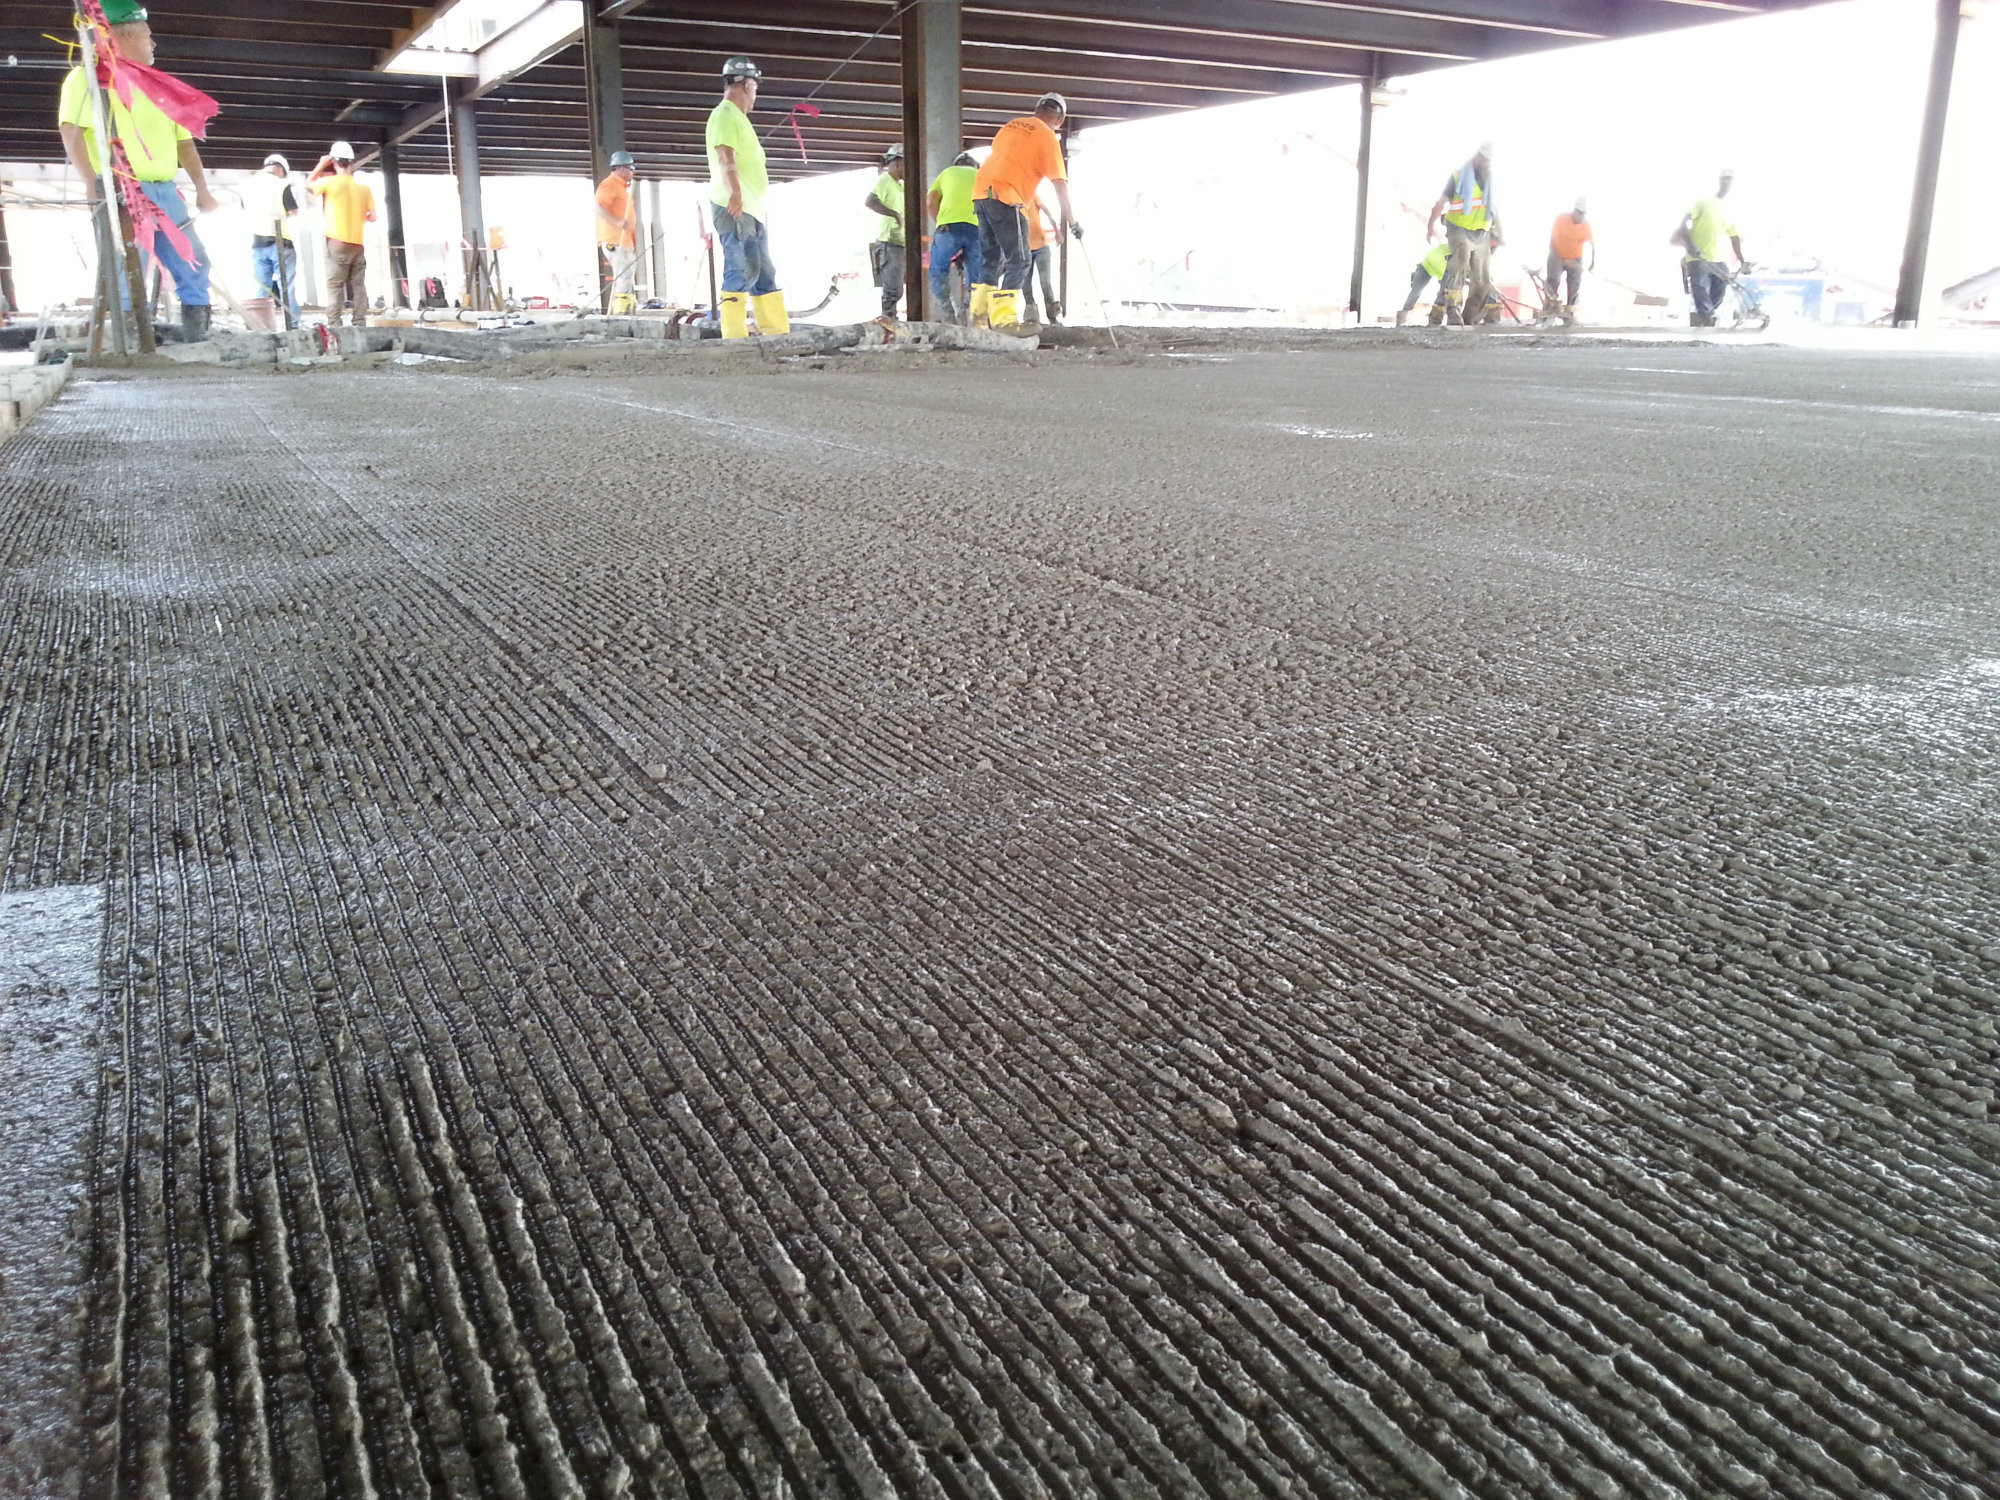 Putting Hardwood Floor On Concrete Slab Of Preparing for A topping Concrete Construction Magazine Surface with Regard to Preparing for A topping Concrete Construction Magazine Surface Preparation Concrete Slabs and Floors Overlays and toppings International Concrete